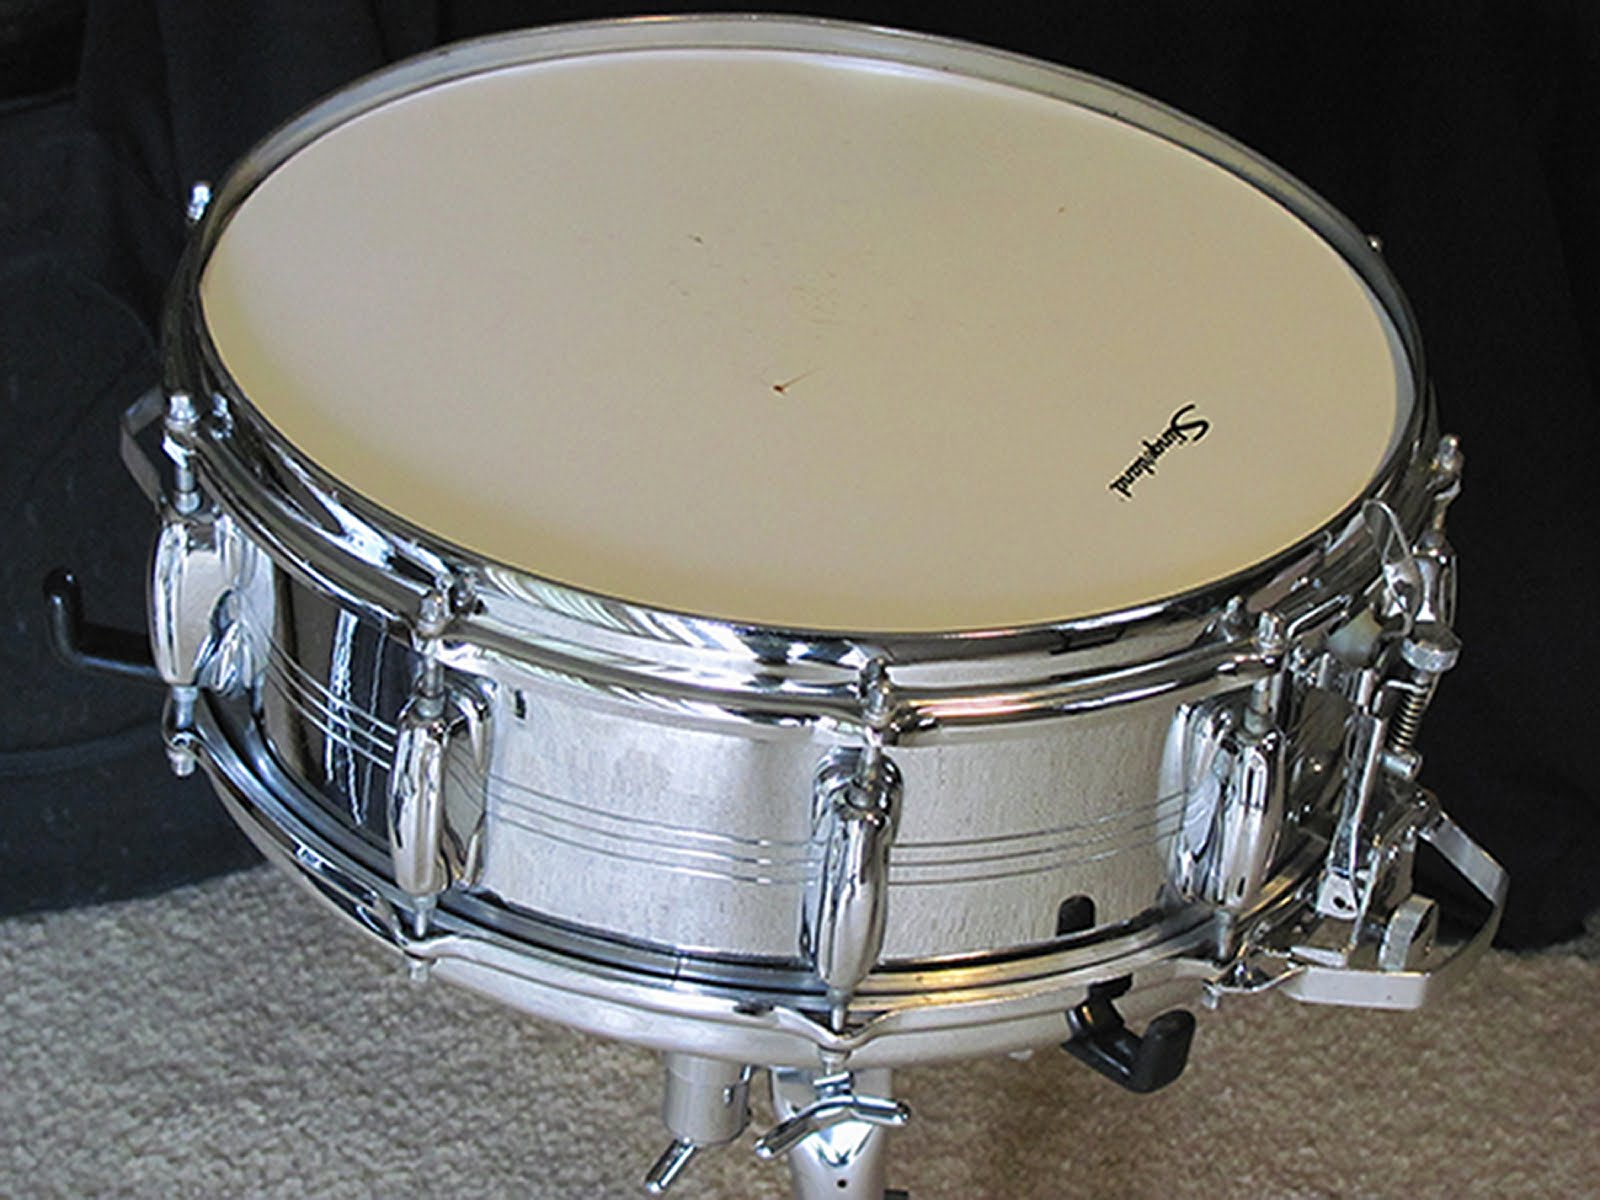 Crash Boom Bam: The Slingerland Super Sound King Snare Drum